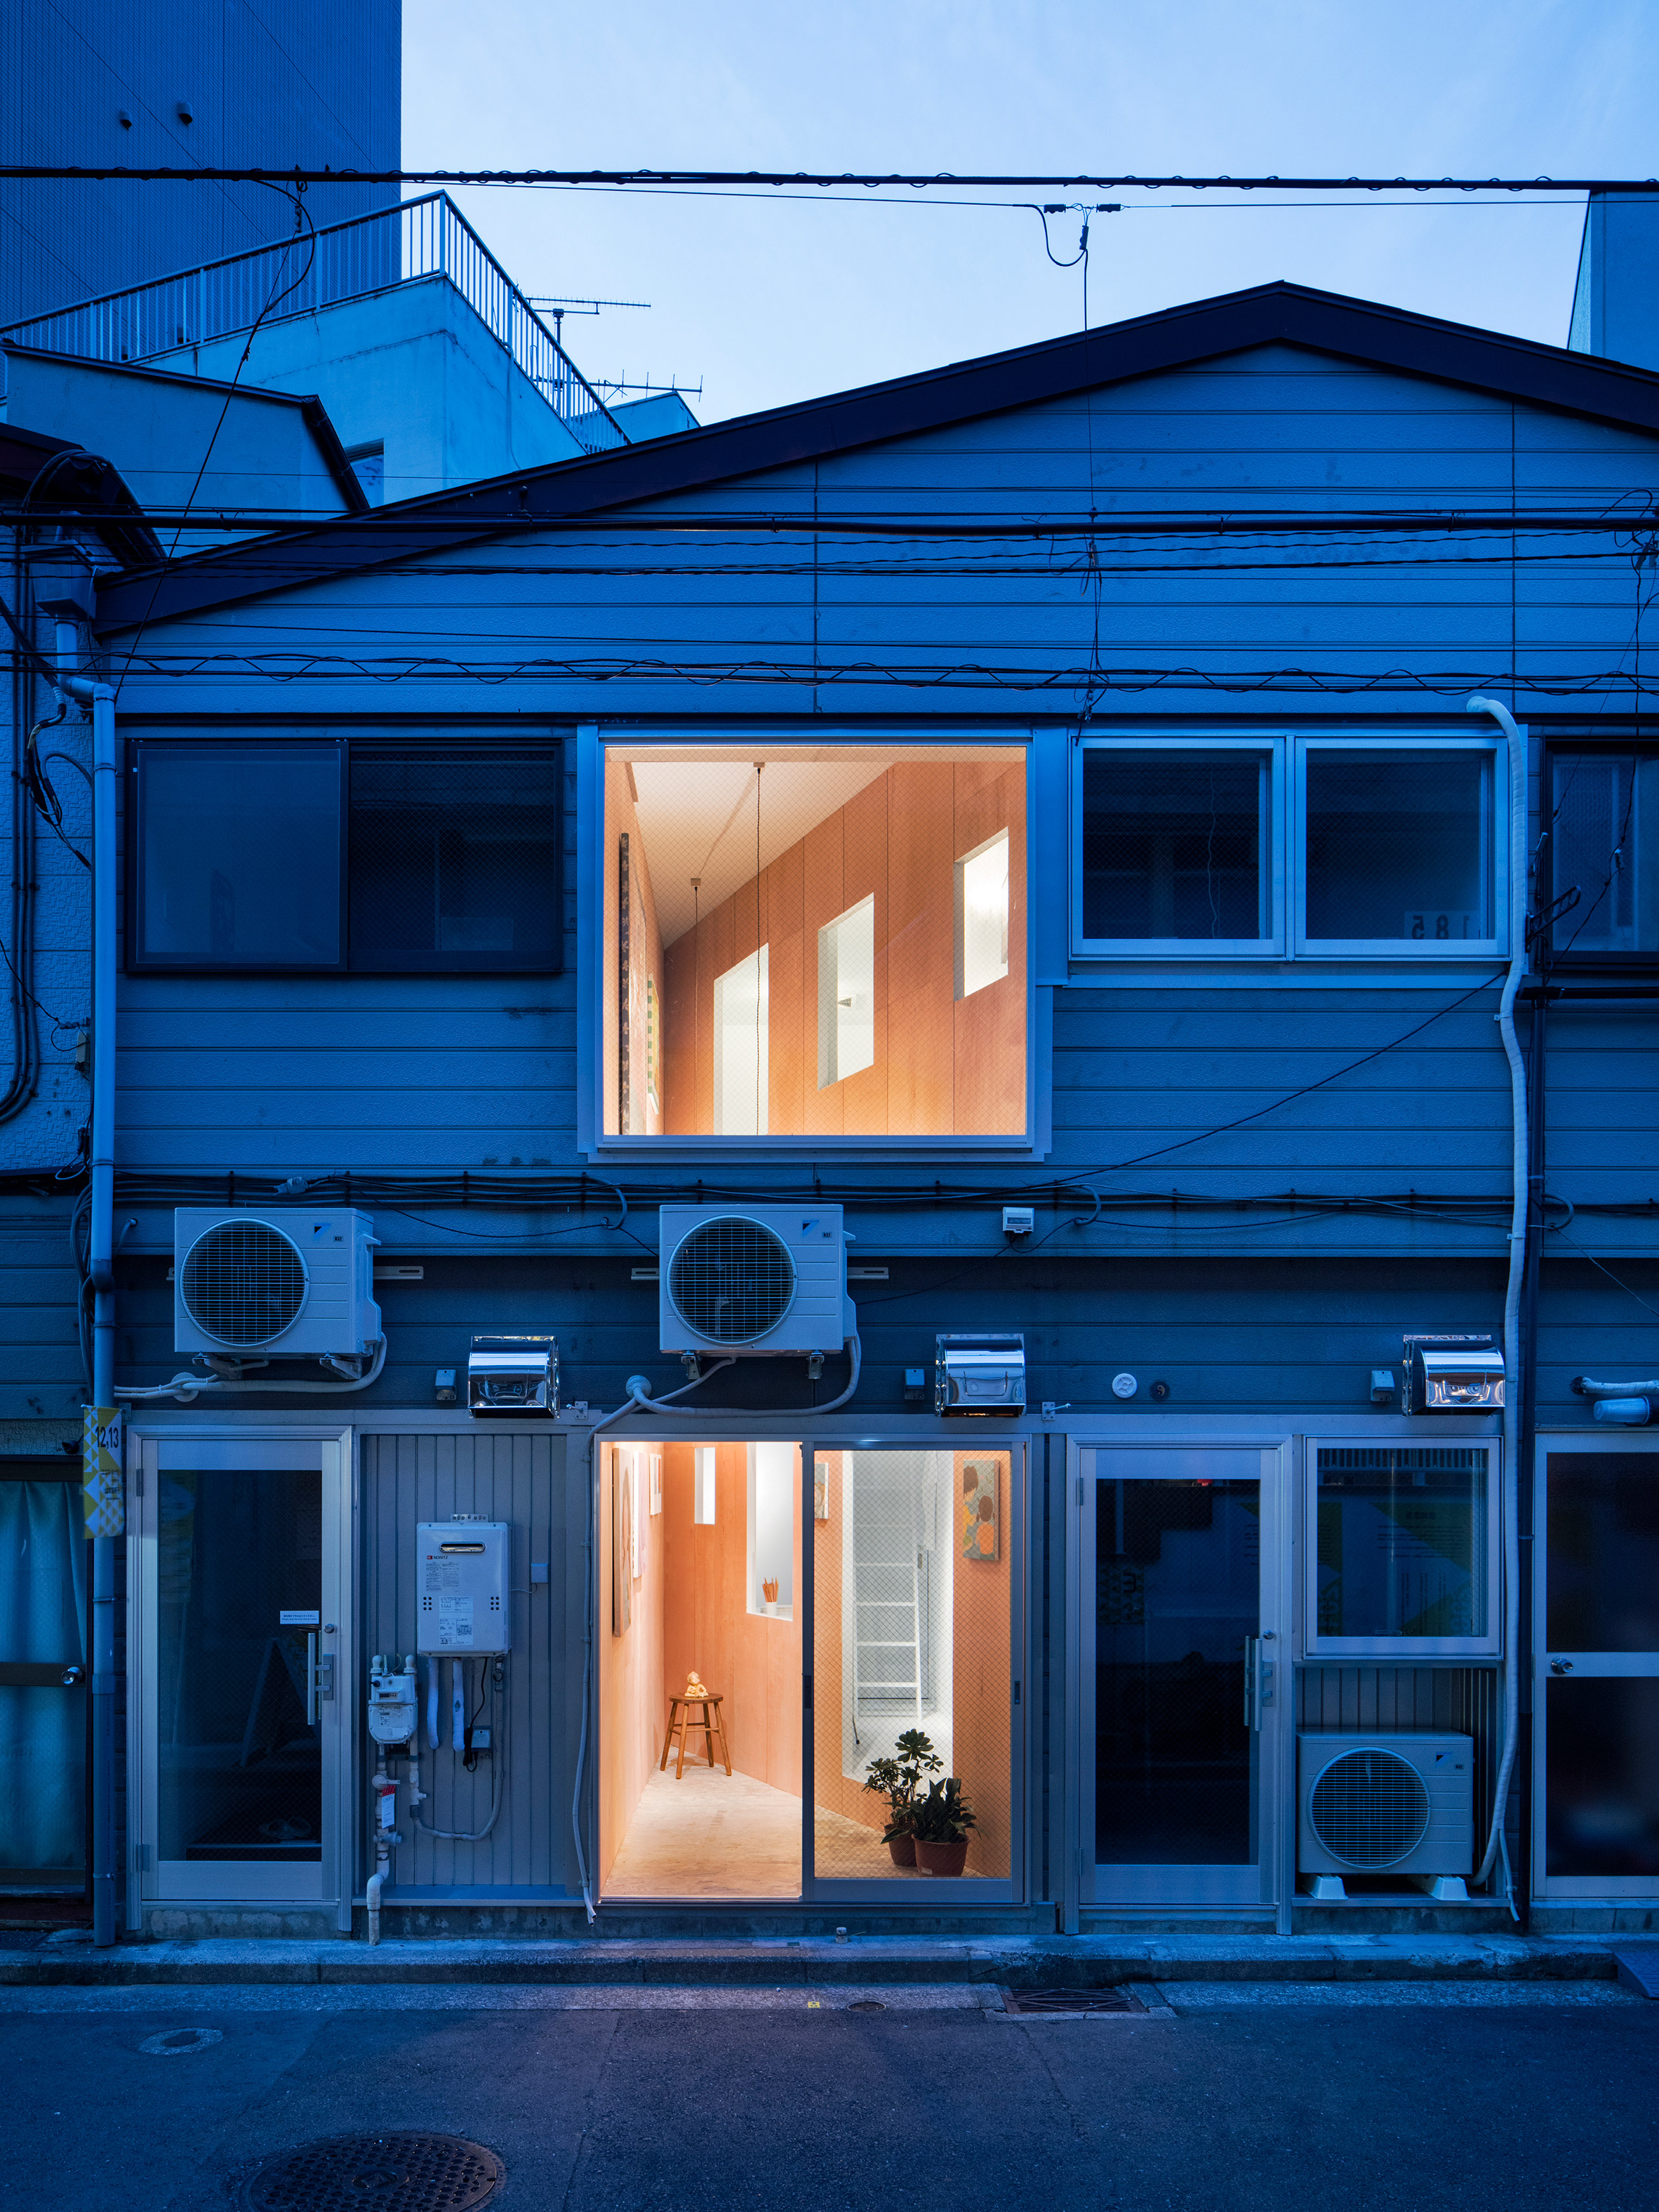 Sex shop converted into tiny Japanese art gallery by Persimmon Hills Architects